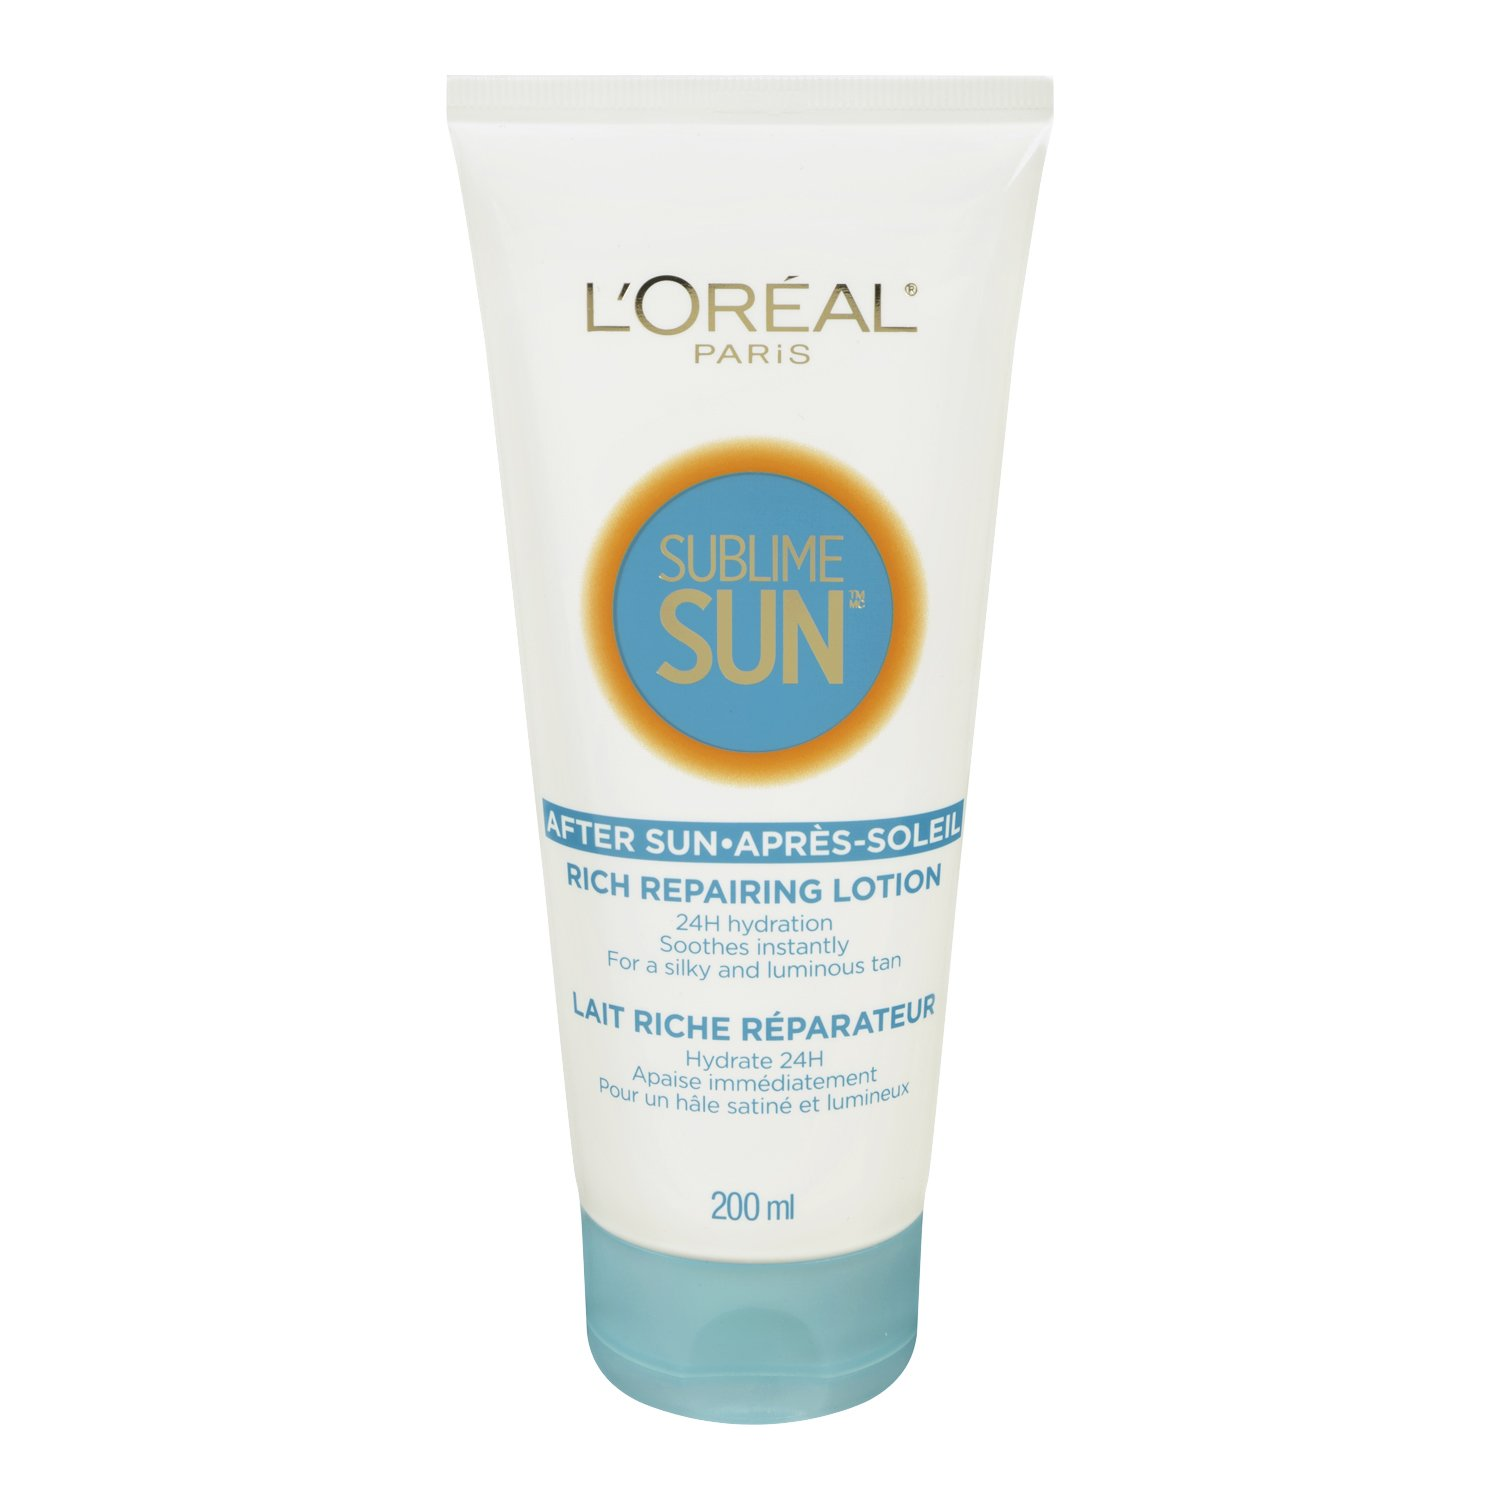 L'Oreal Paris Sublime After Sun, 200-Milliliter L'Oreal Paris L'oreal Paris Sublime Sun